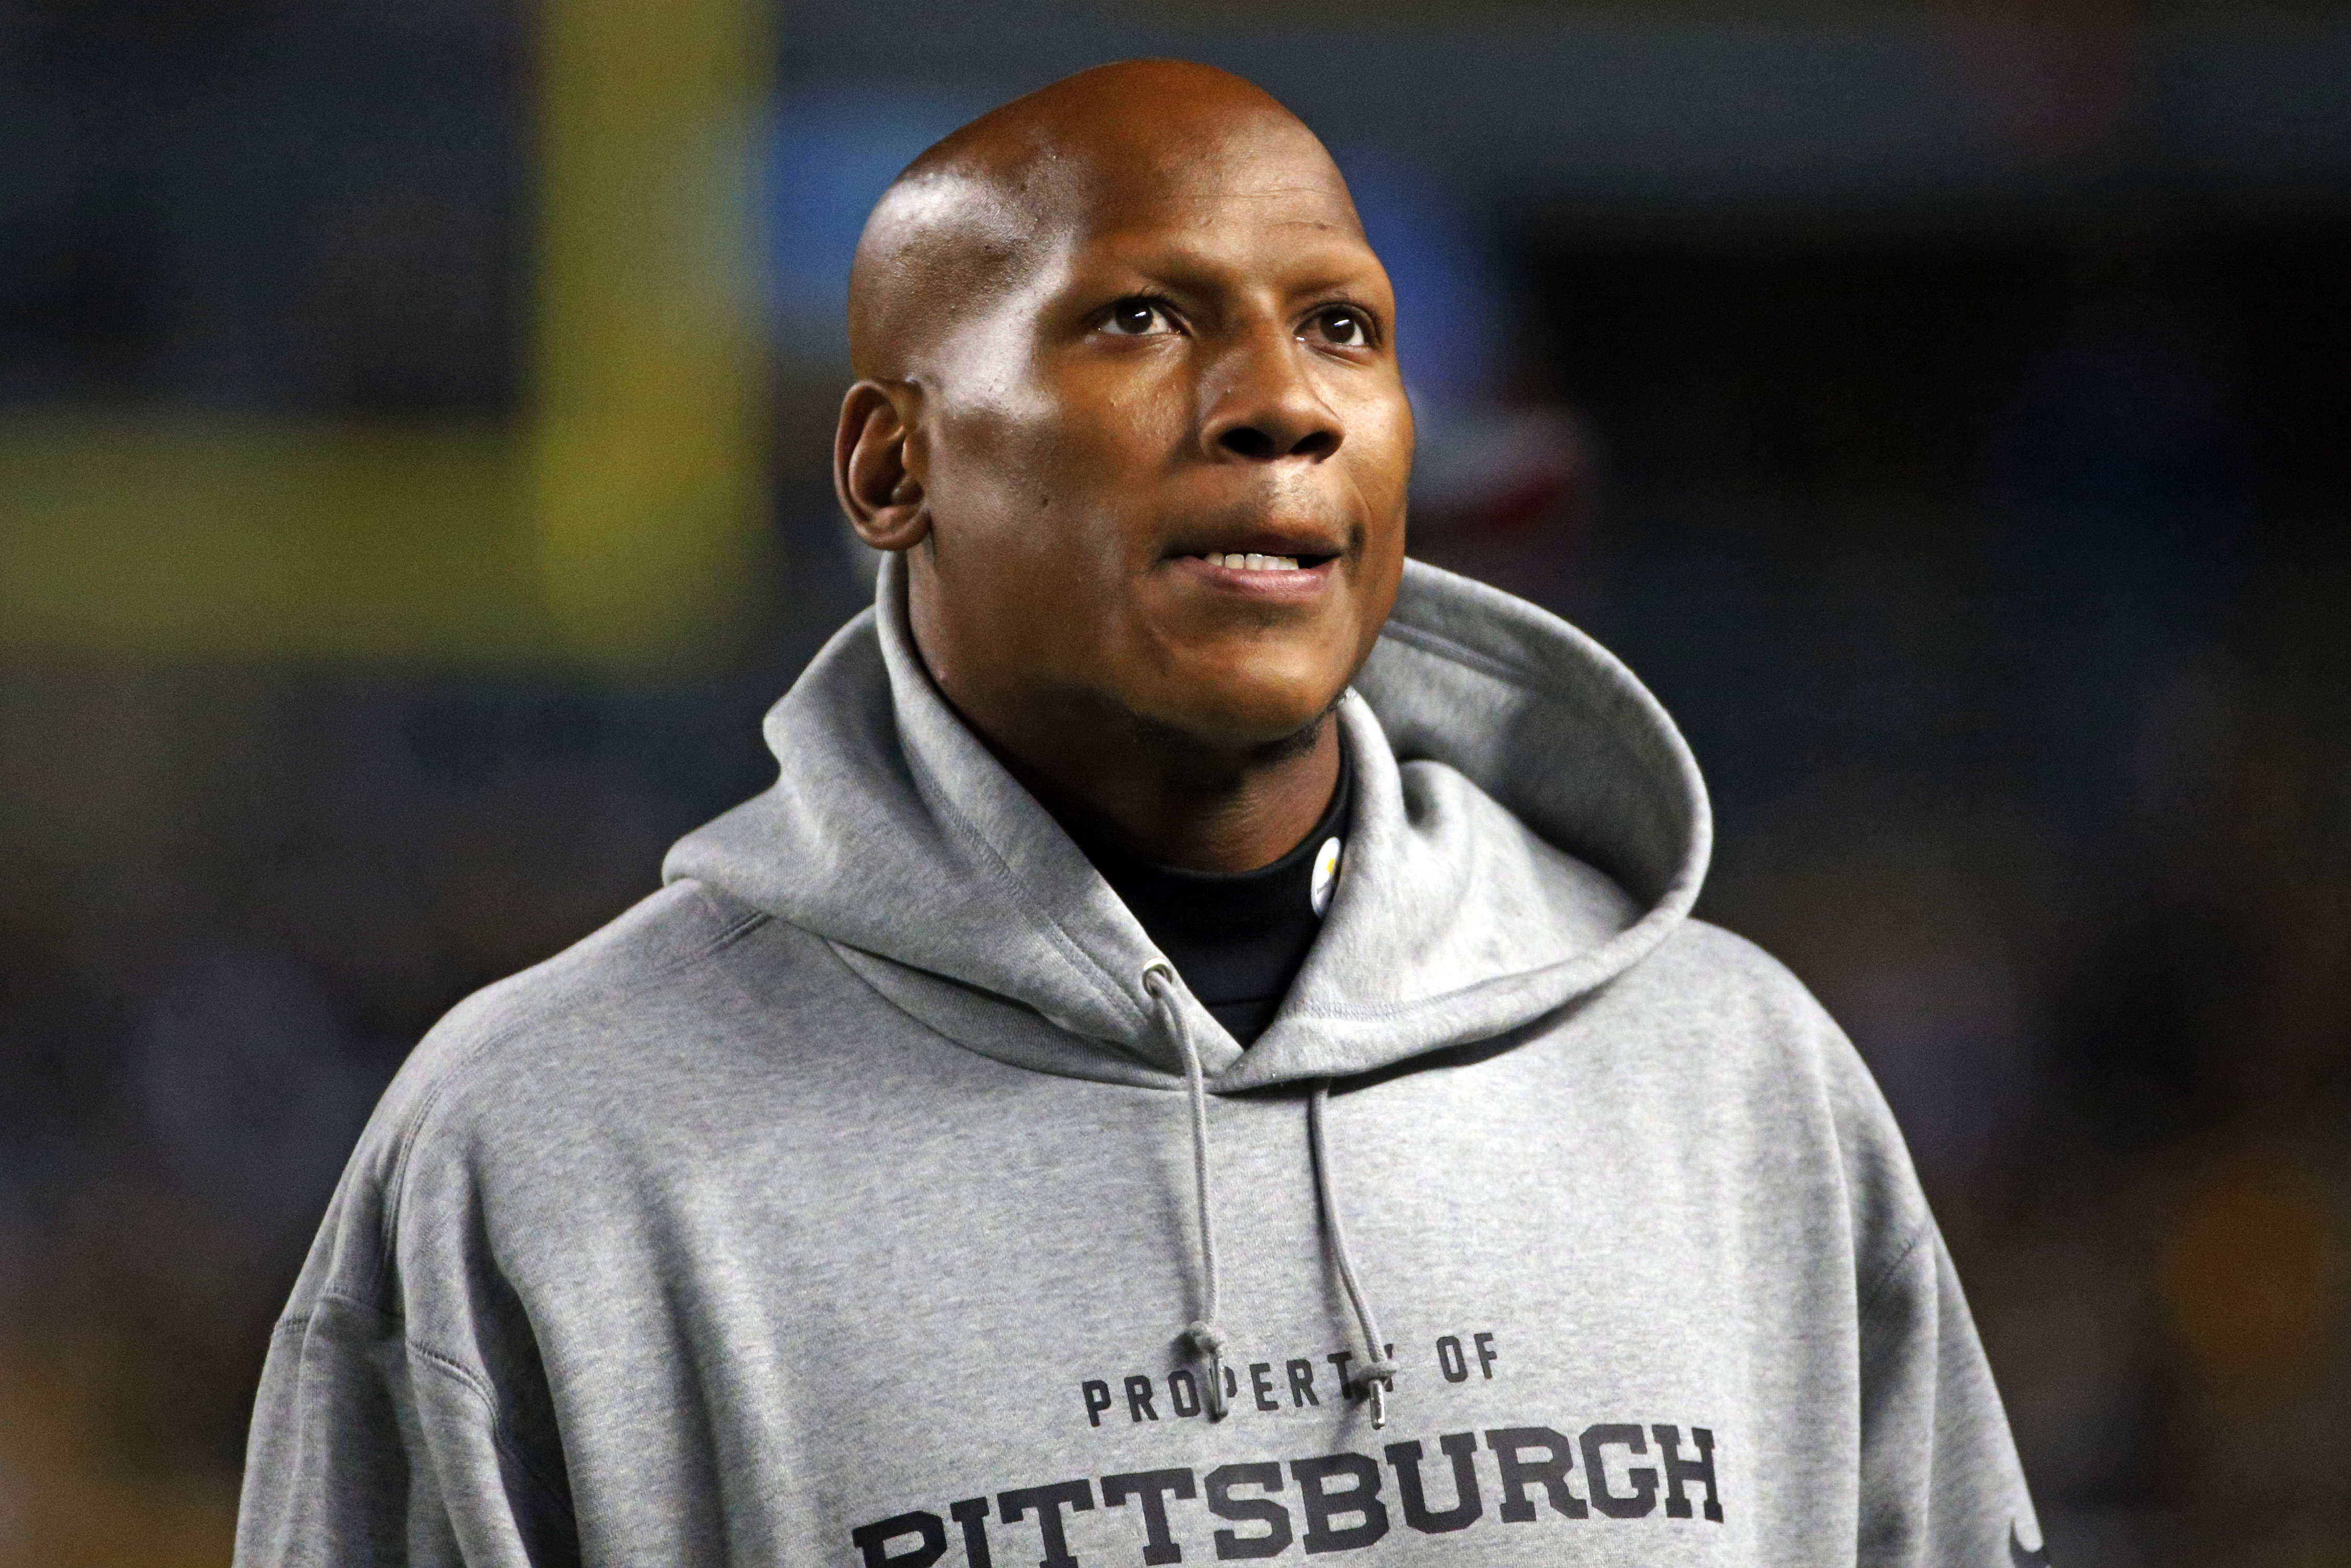 Pittsburgh Steelers inside linebacker Ryan Shazier (50) stands on the sidelines injured during the second half of an NFL football game against the Baltimore Ravens, Thursday, Oct. 1, 2015 in Pittsburgh. (AP Photo/Gene J. Puskar)